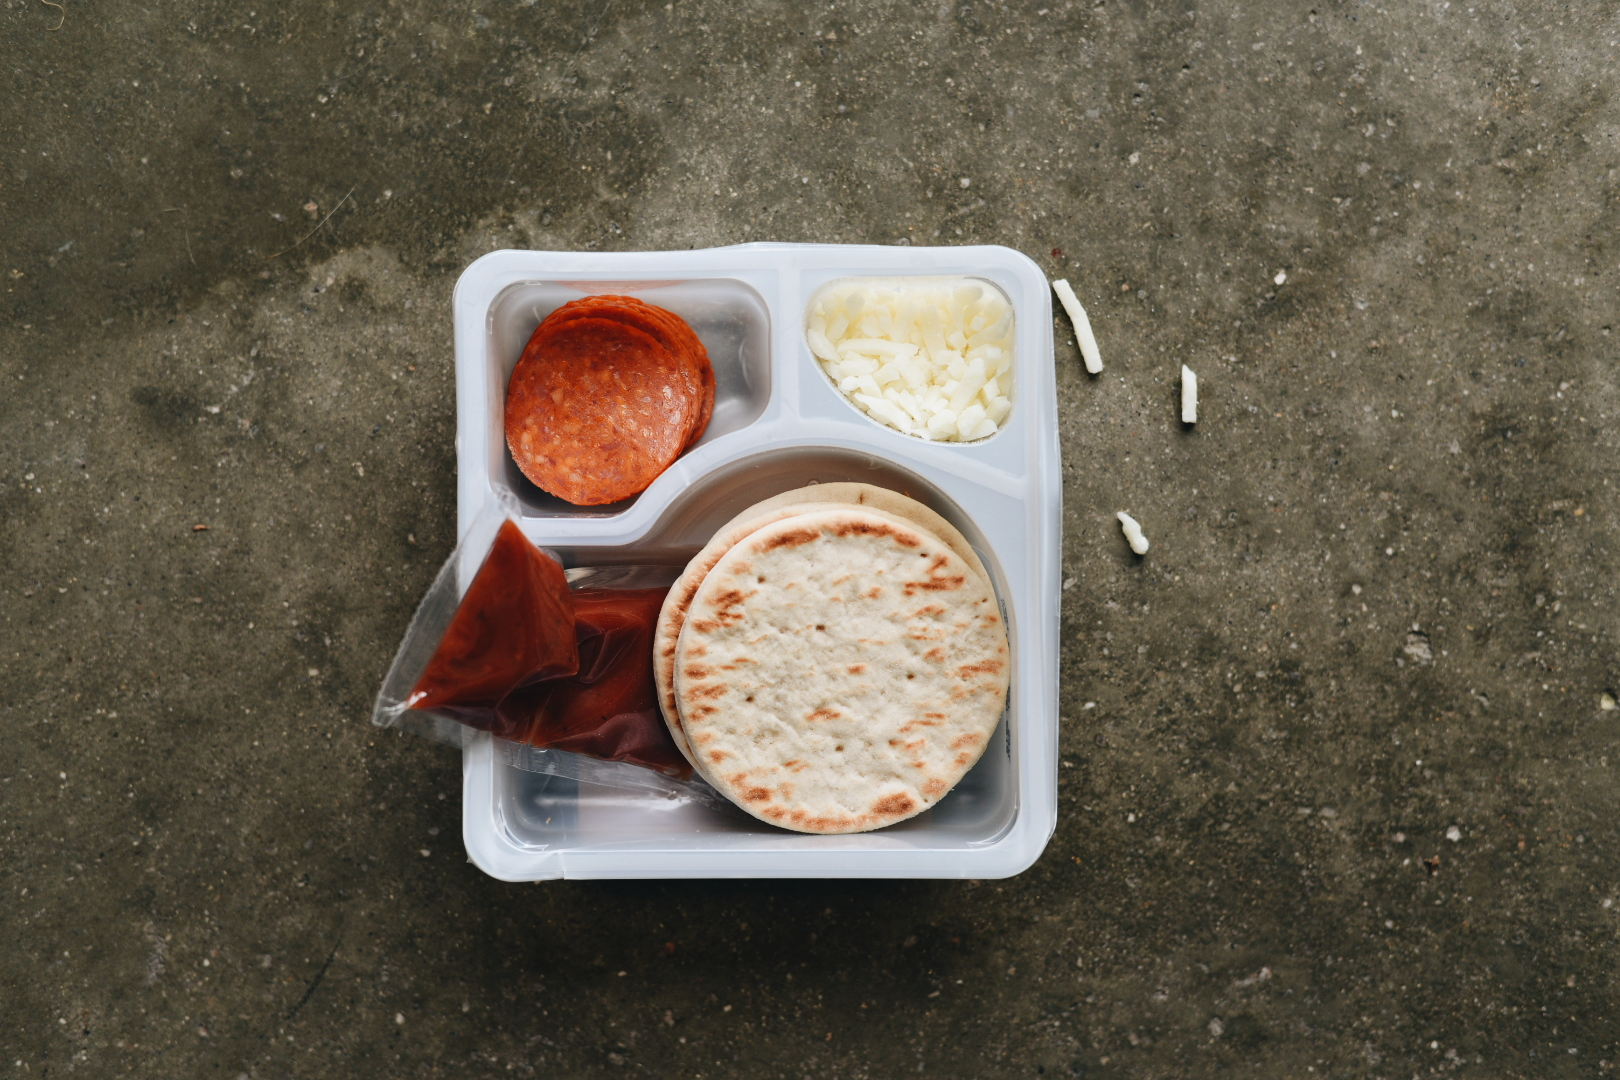 L is for school Lunch.